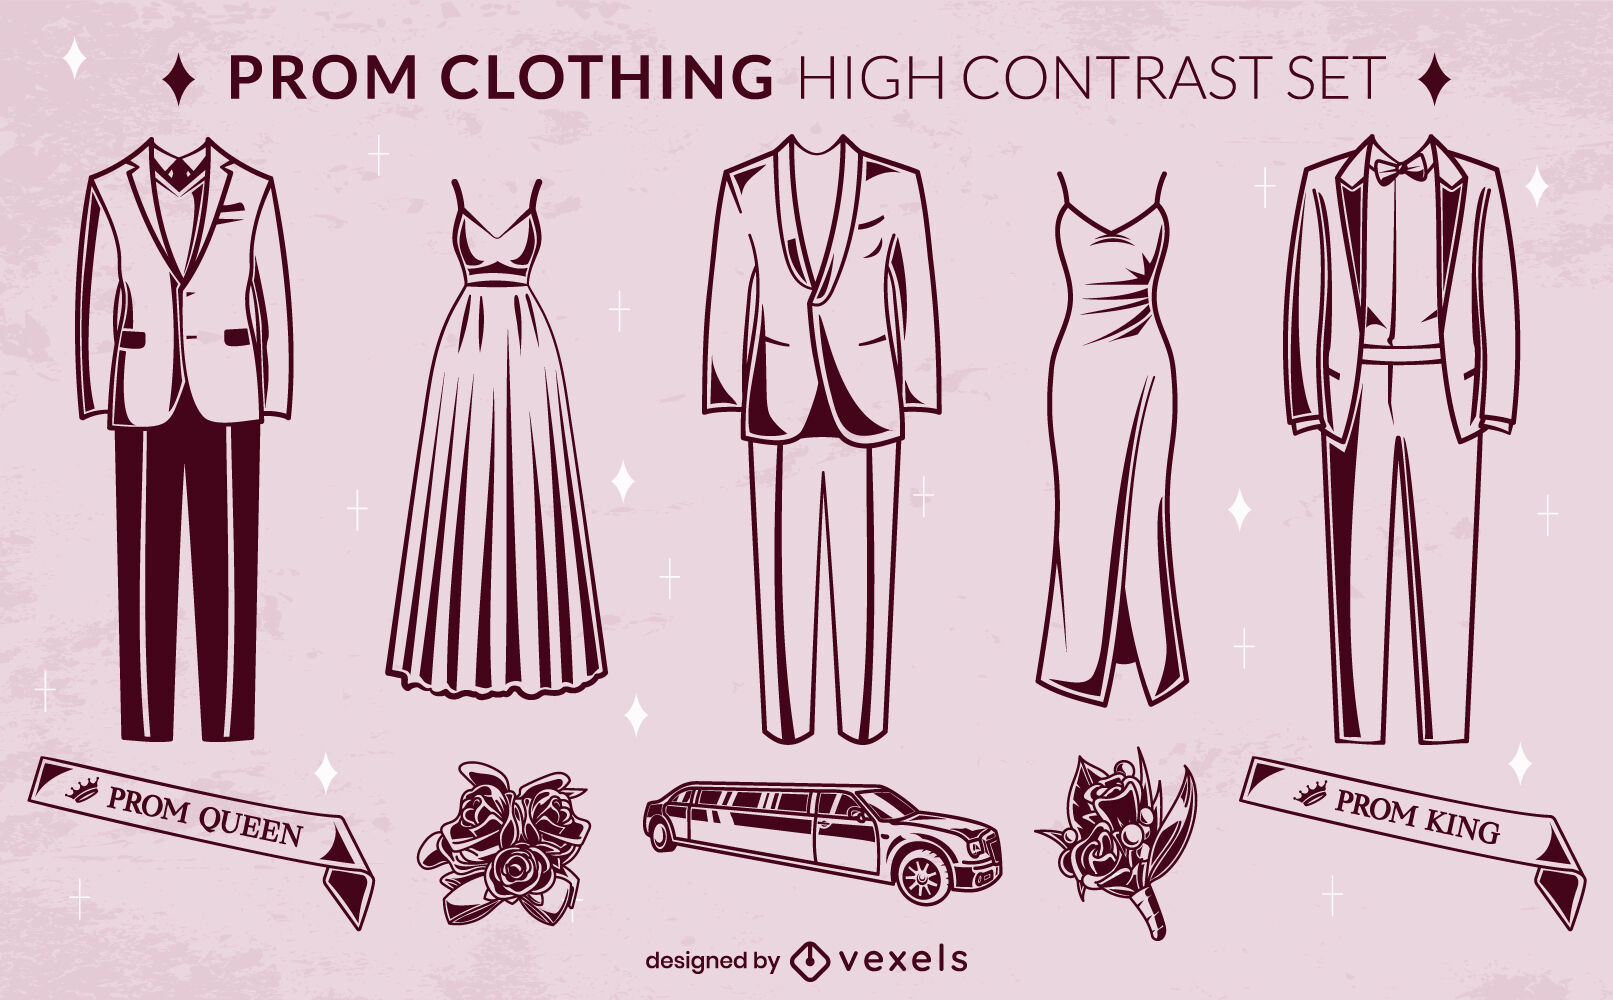 Prom night dance clothing set high contrast